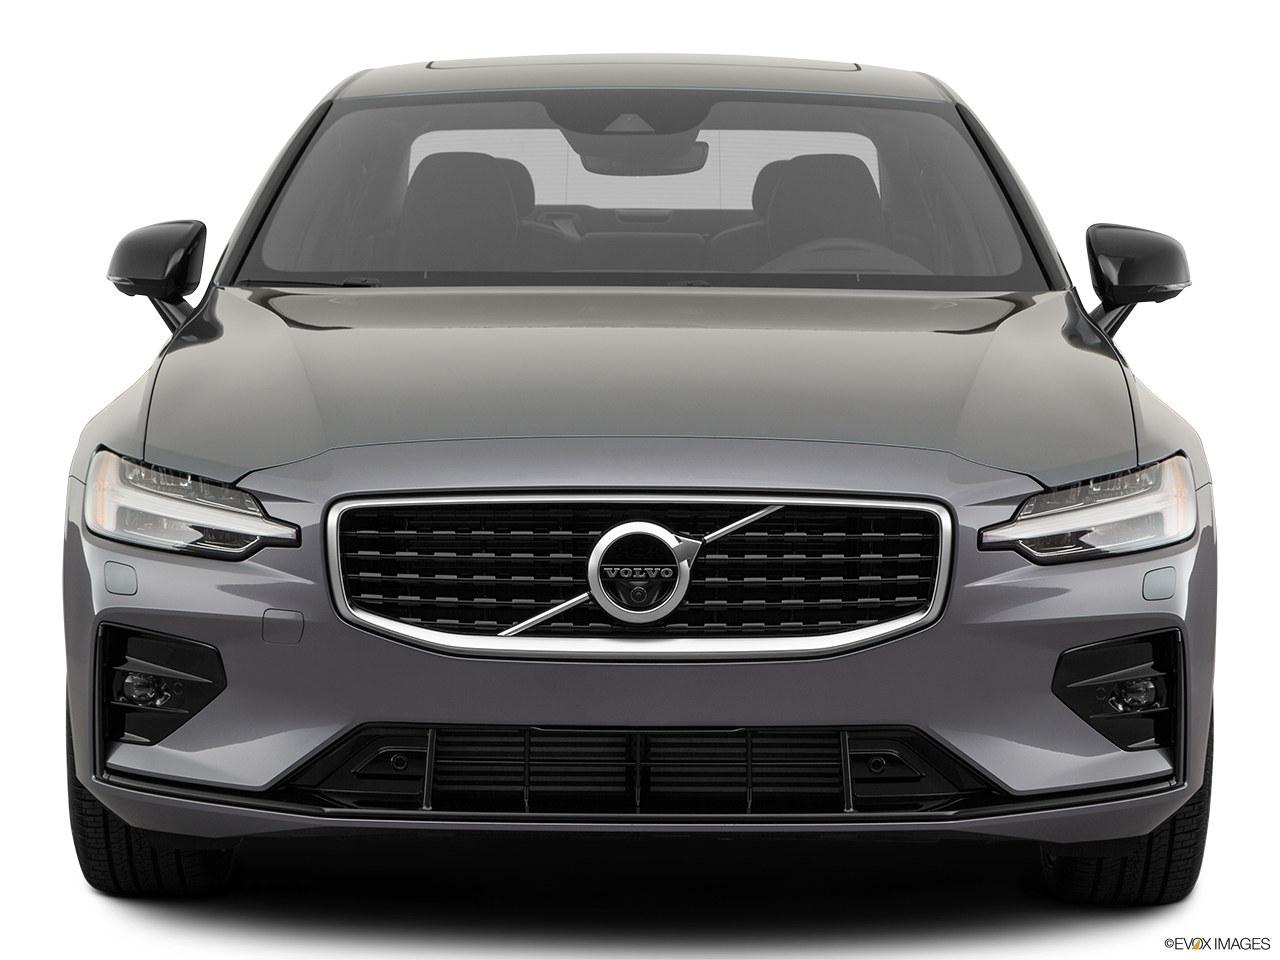 Front view of the Volvo S60 PHEV